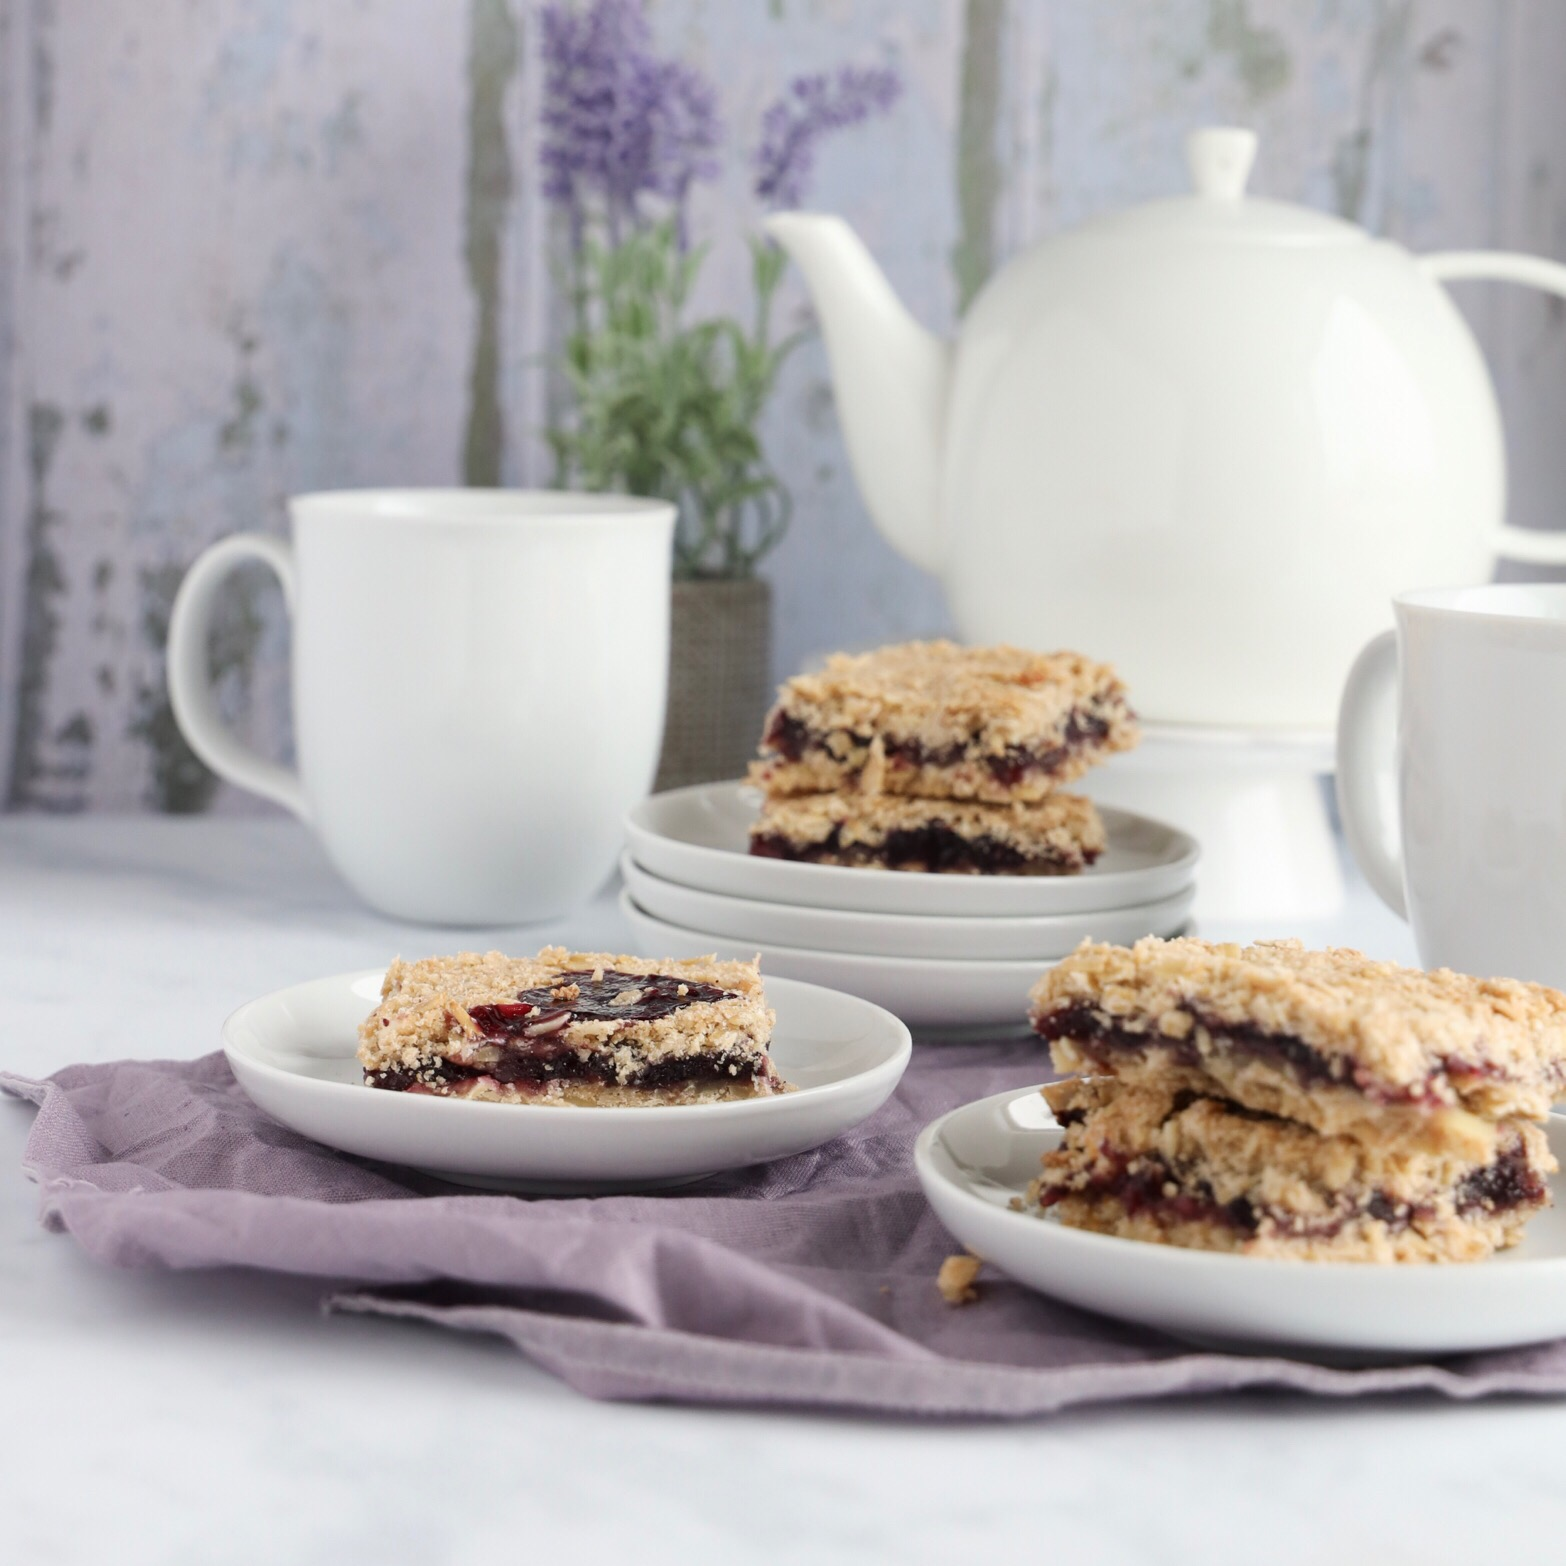 These gluten-free blueberry crumb bars are made with organic blueberry jam and has a buttery crust and crumbly topping.